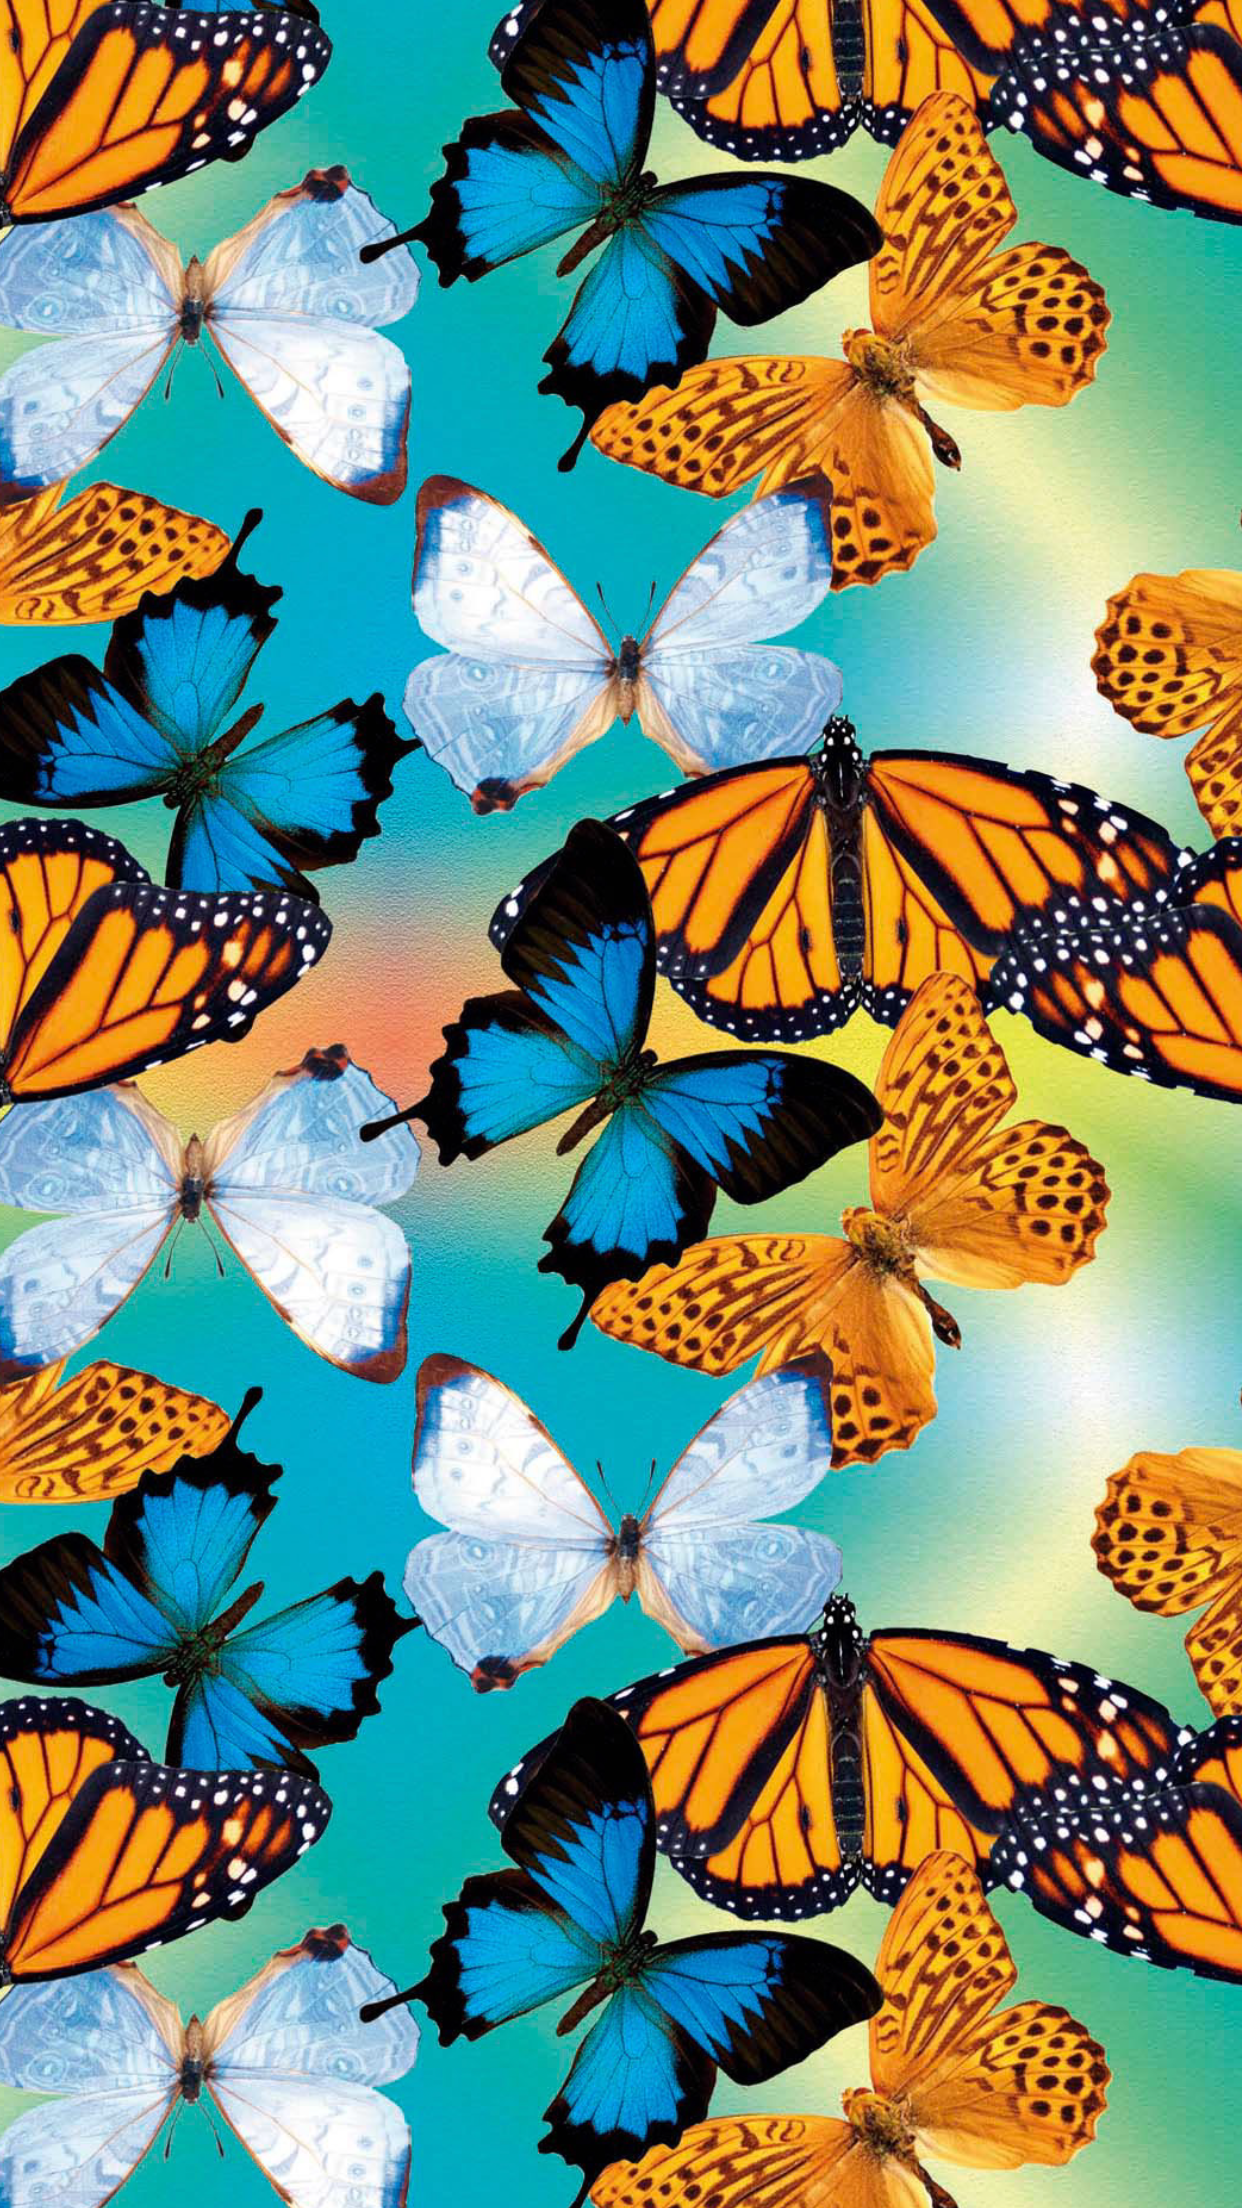 Butterfly VSCO Wallpapers - Wallpaper Cave